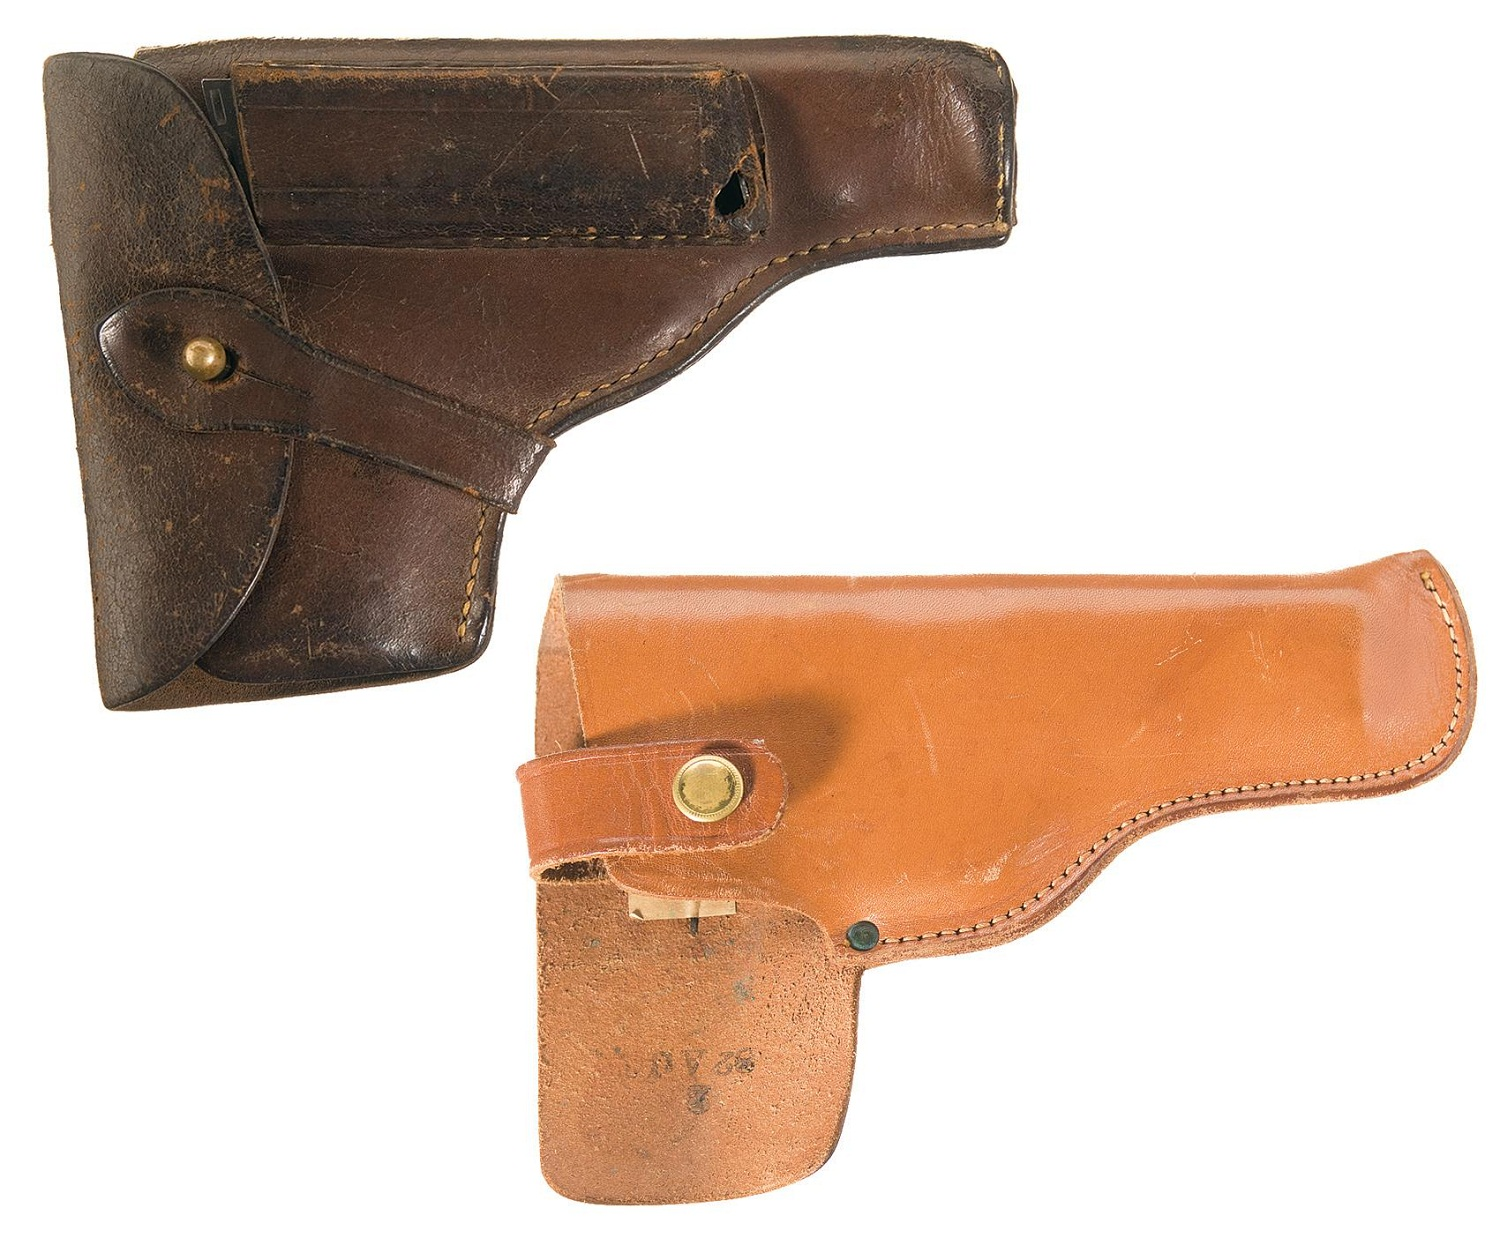 Holsters 1903 Colt Hammerless Pocket Model